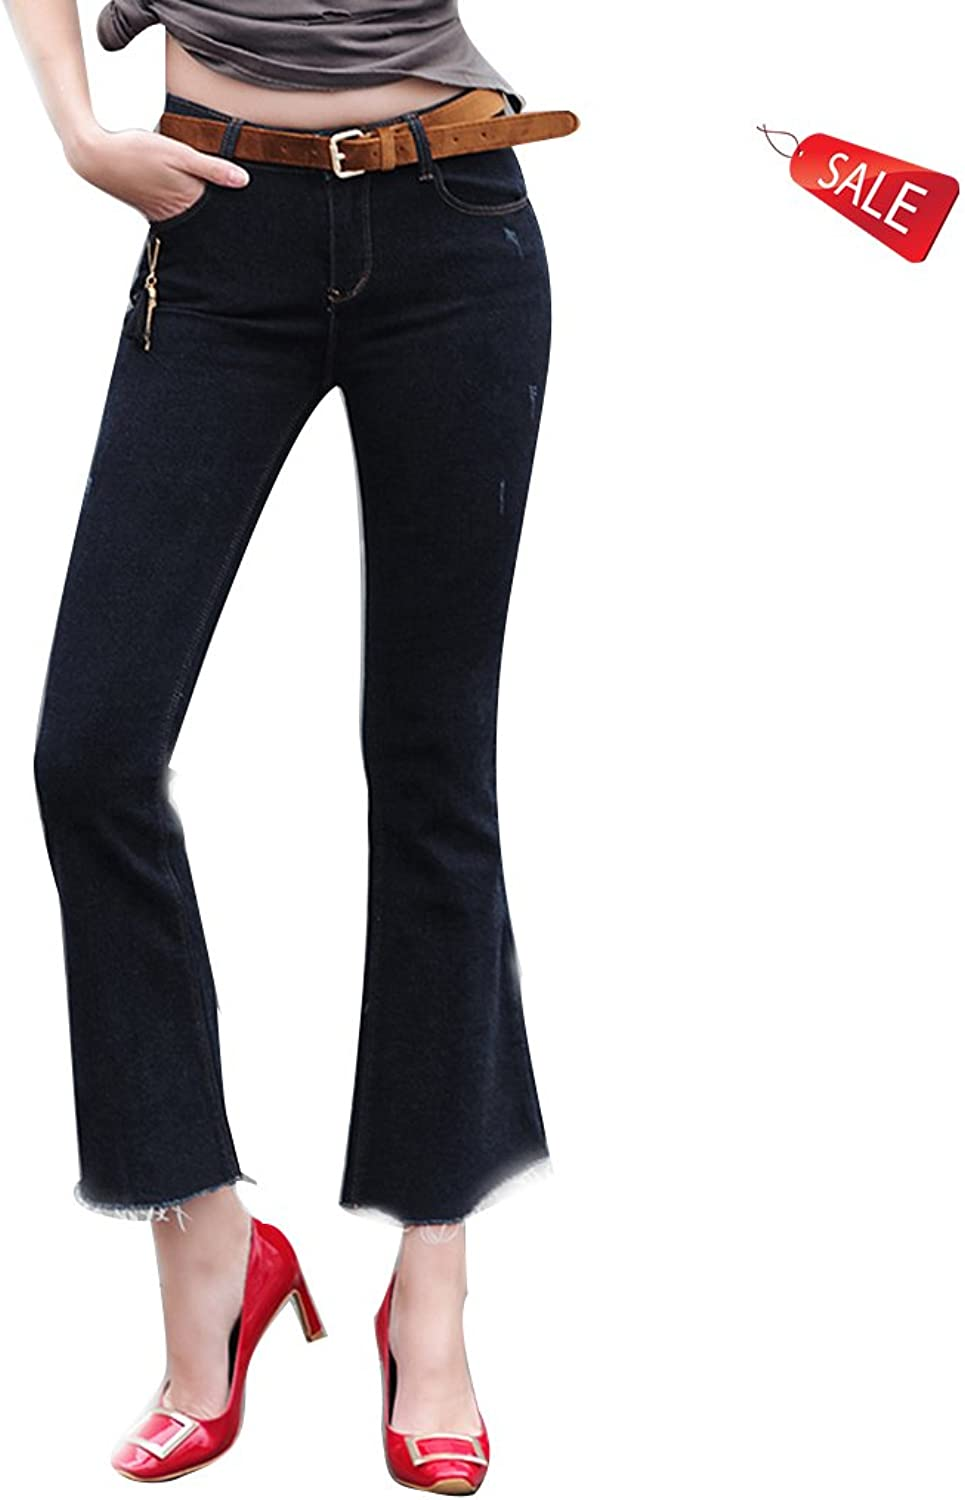 Europe The Jeans Middle Waist Spring and Autumn Slim Large Size Elasticity Retro Boot Cut Pant (Size   25)